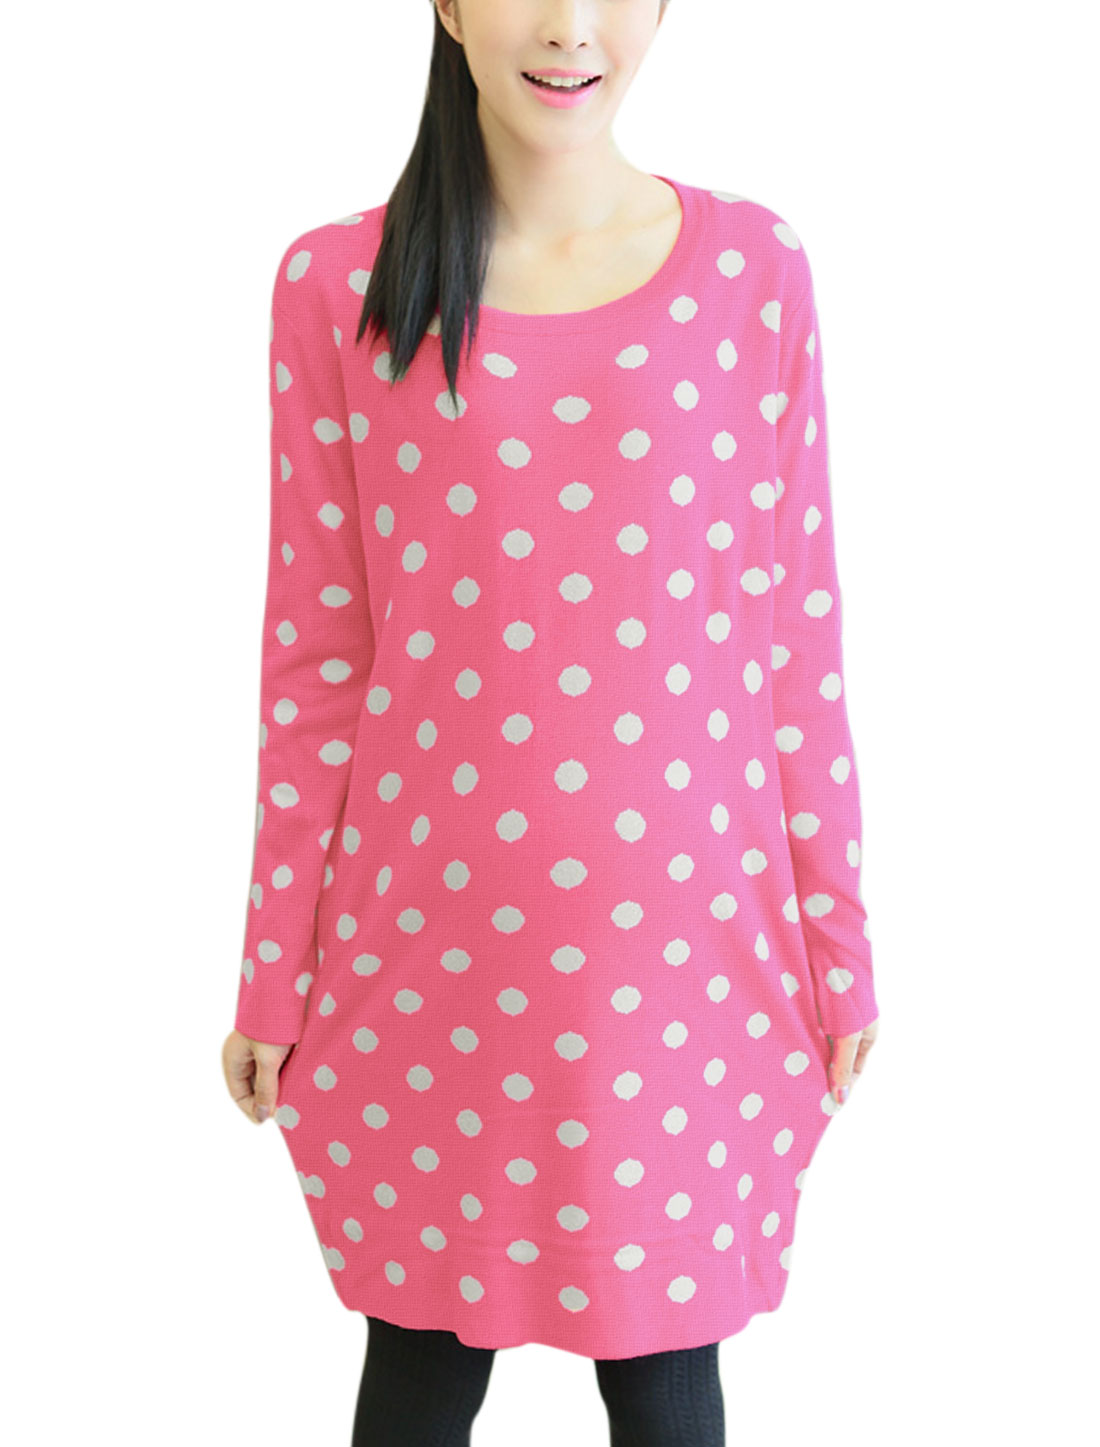 Maternity Slipover Round Neck Dots Pattern Casual Tunic Knit Top Pink White L